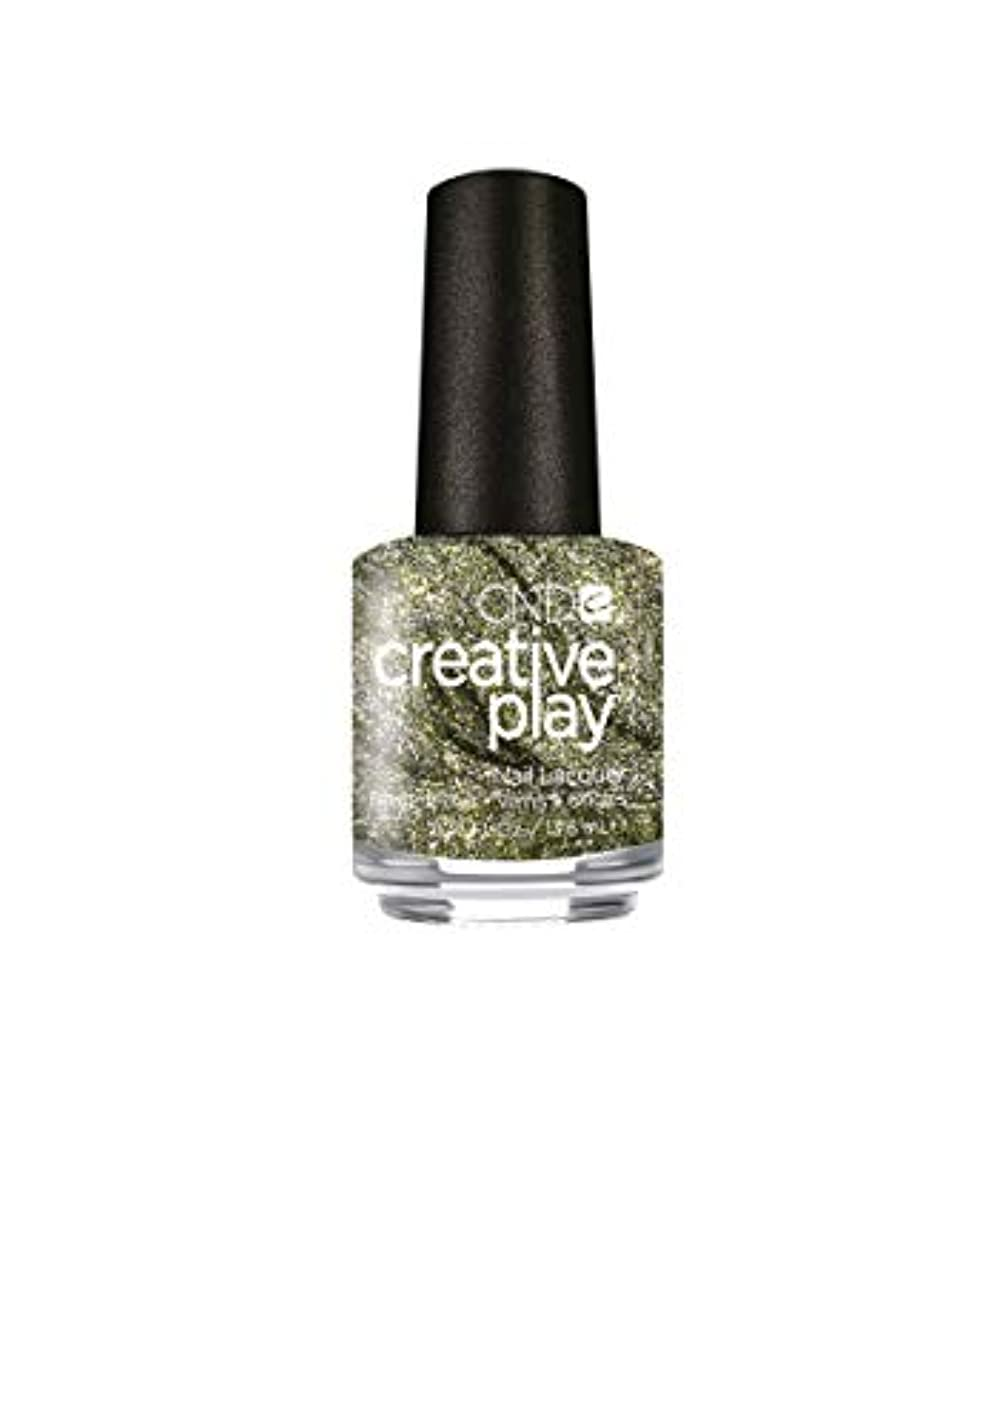 密輸固めるかすれたCND Creative Play Lacquer - O-Live for the Moment - 0.46oz / 13.6ml